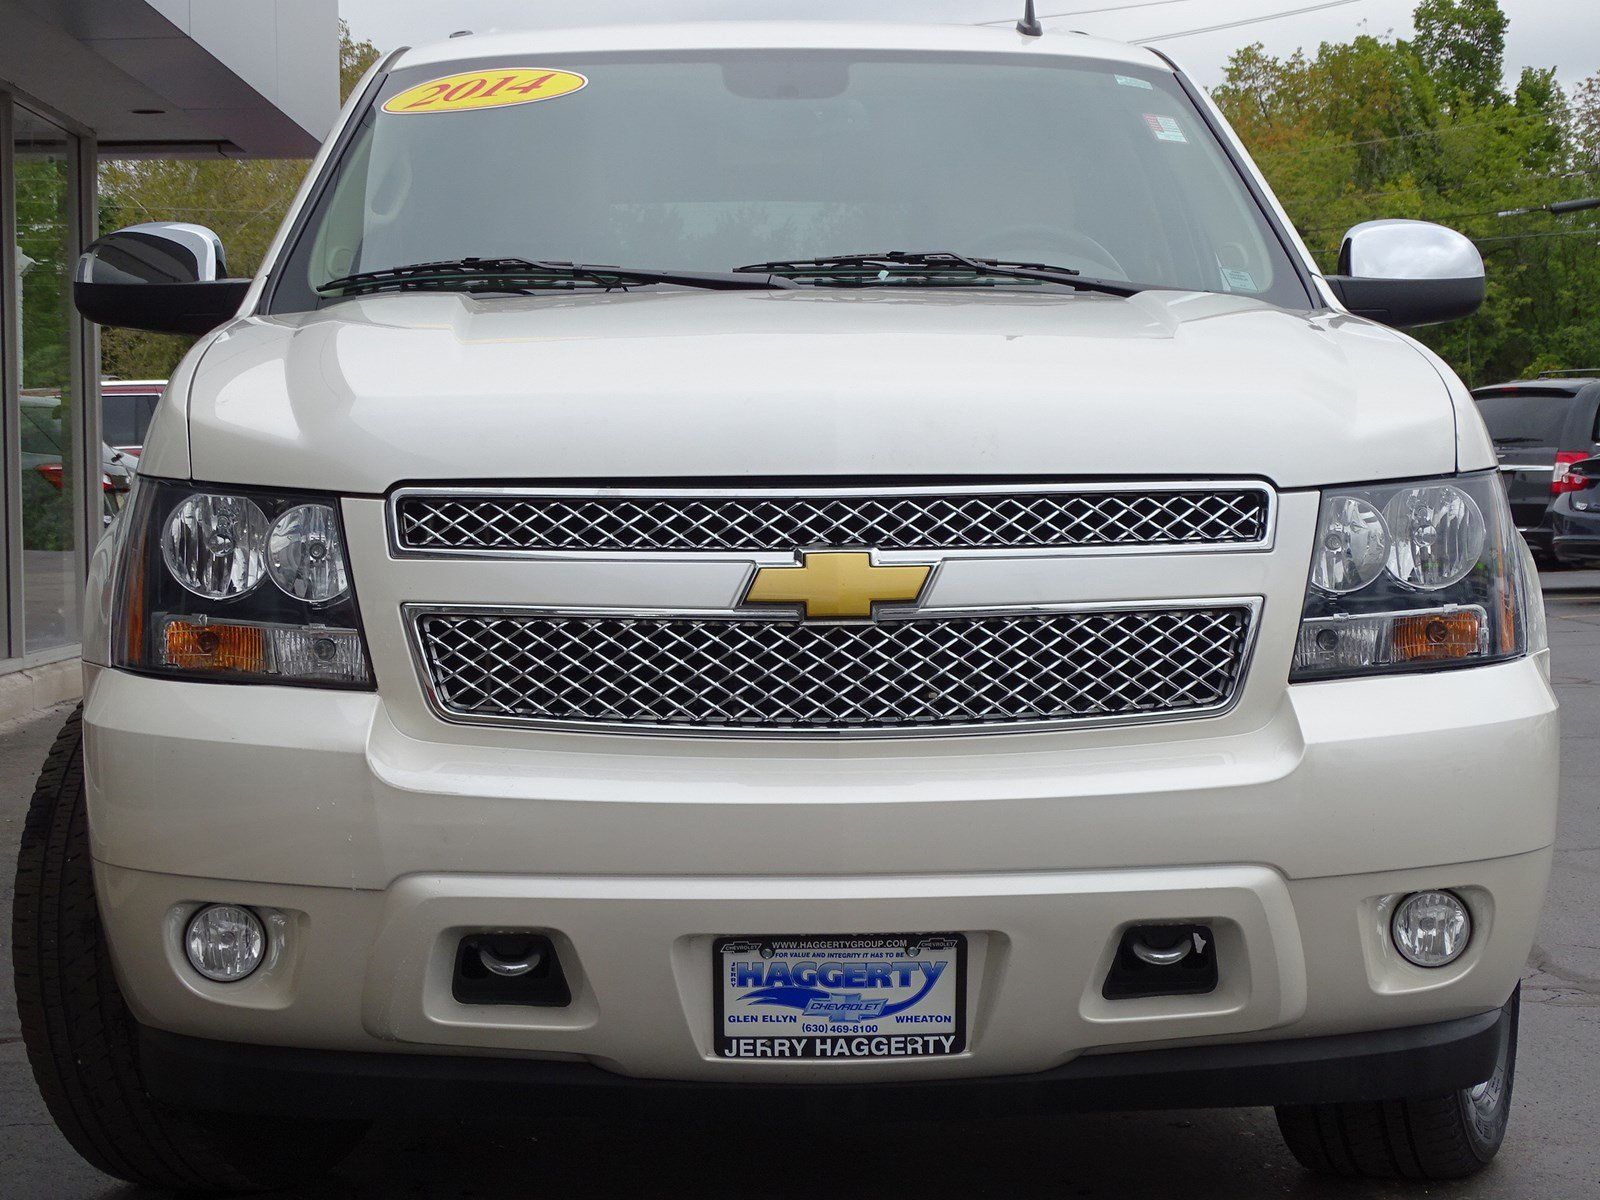 Certified Pre-Owned 2014 Chevrolet Suburban LTZ